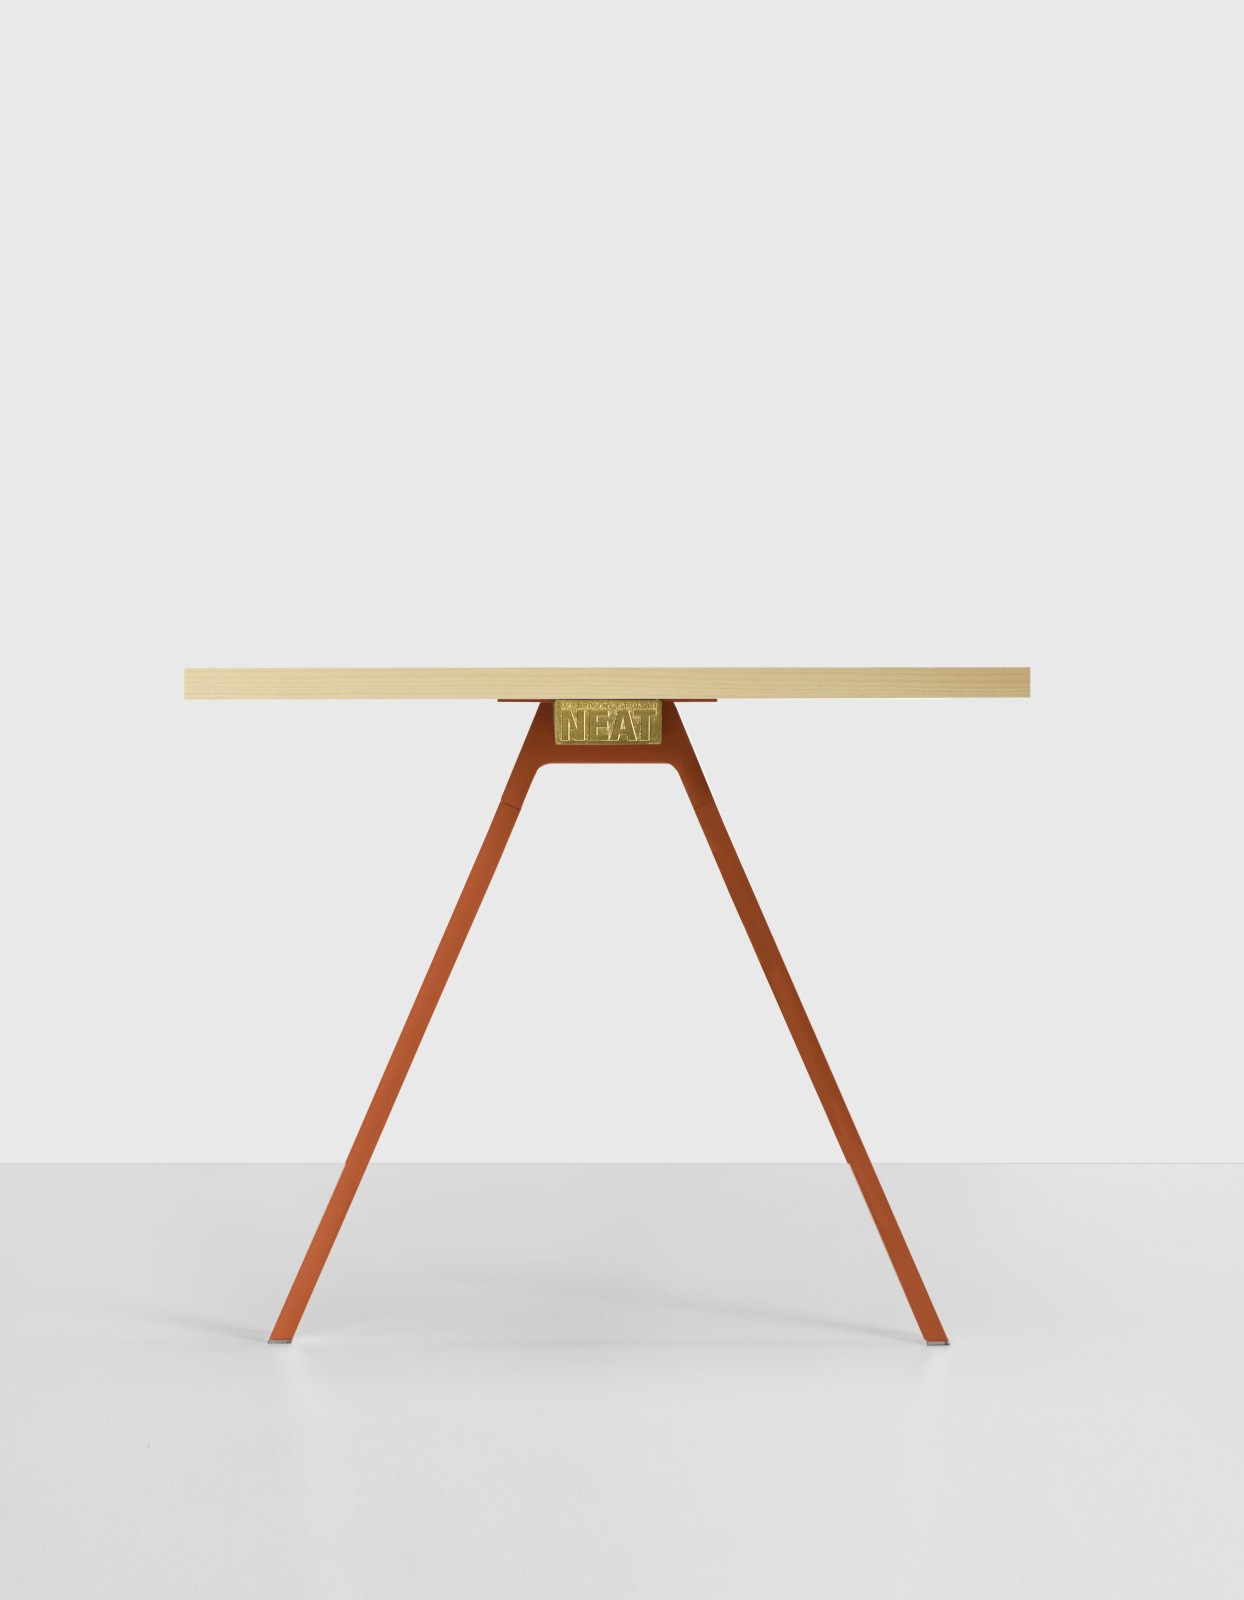 Neat Wood Table L180 X D90, White, Walnut